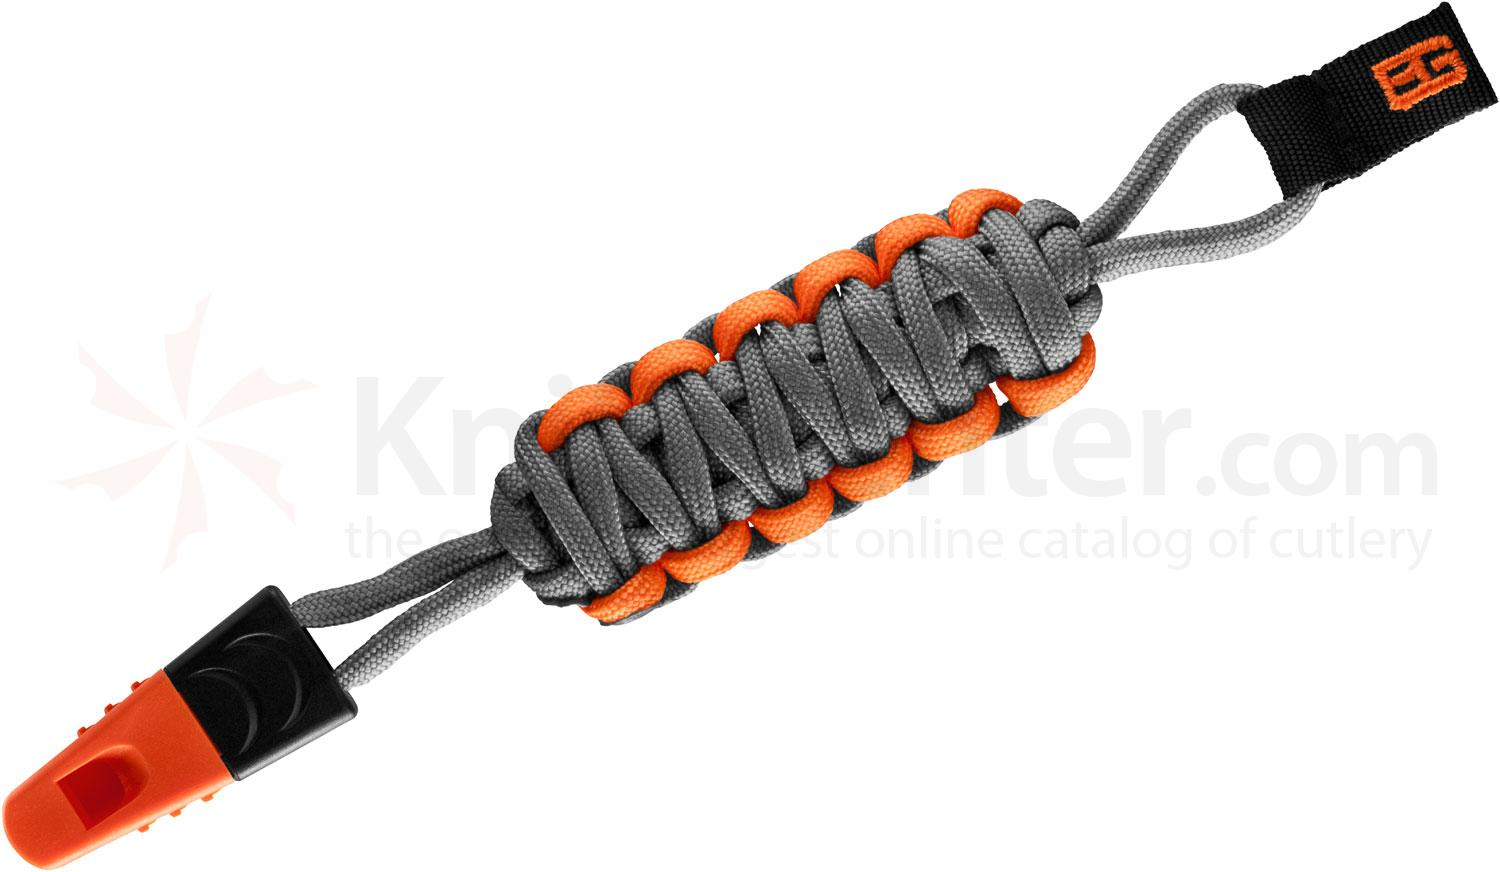 Gerber 31-001788 Bear Grylls Survival Lanyard, 5 inch Overall, 6 Feet of Paracord, Safety Whistle